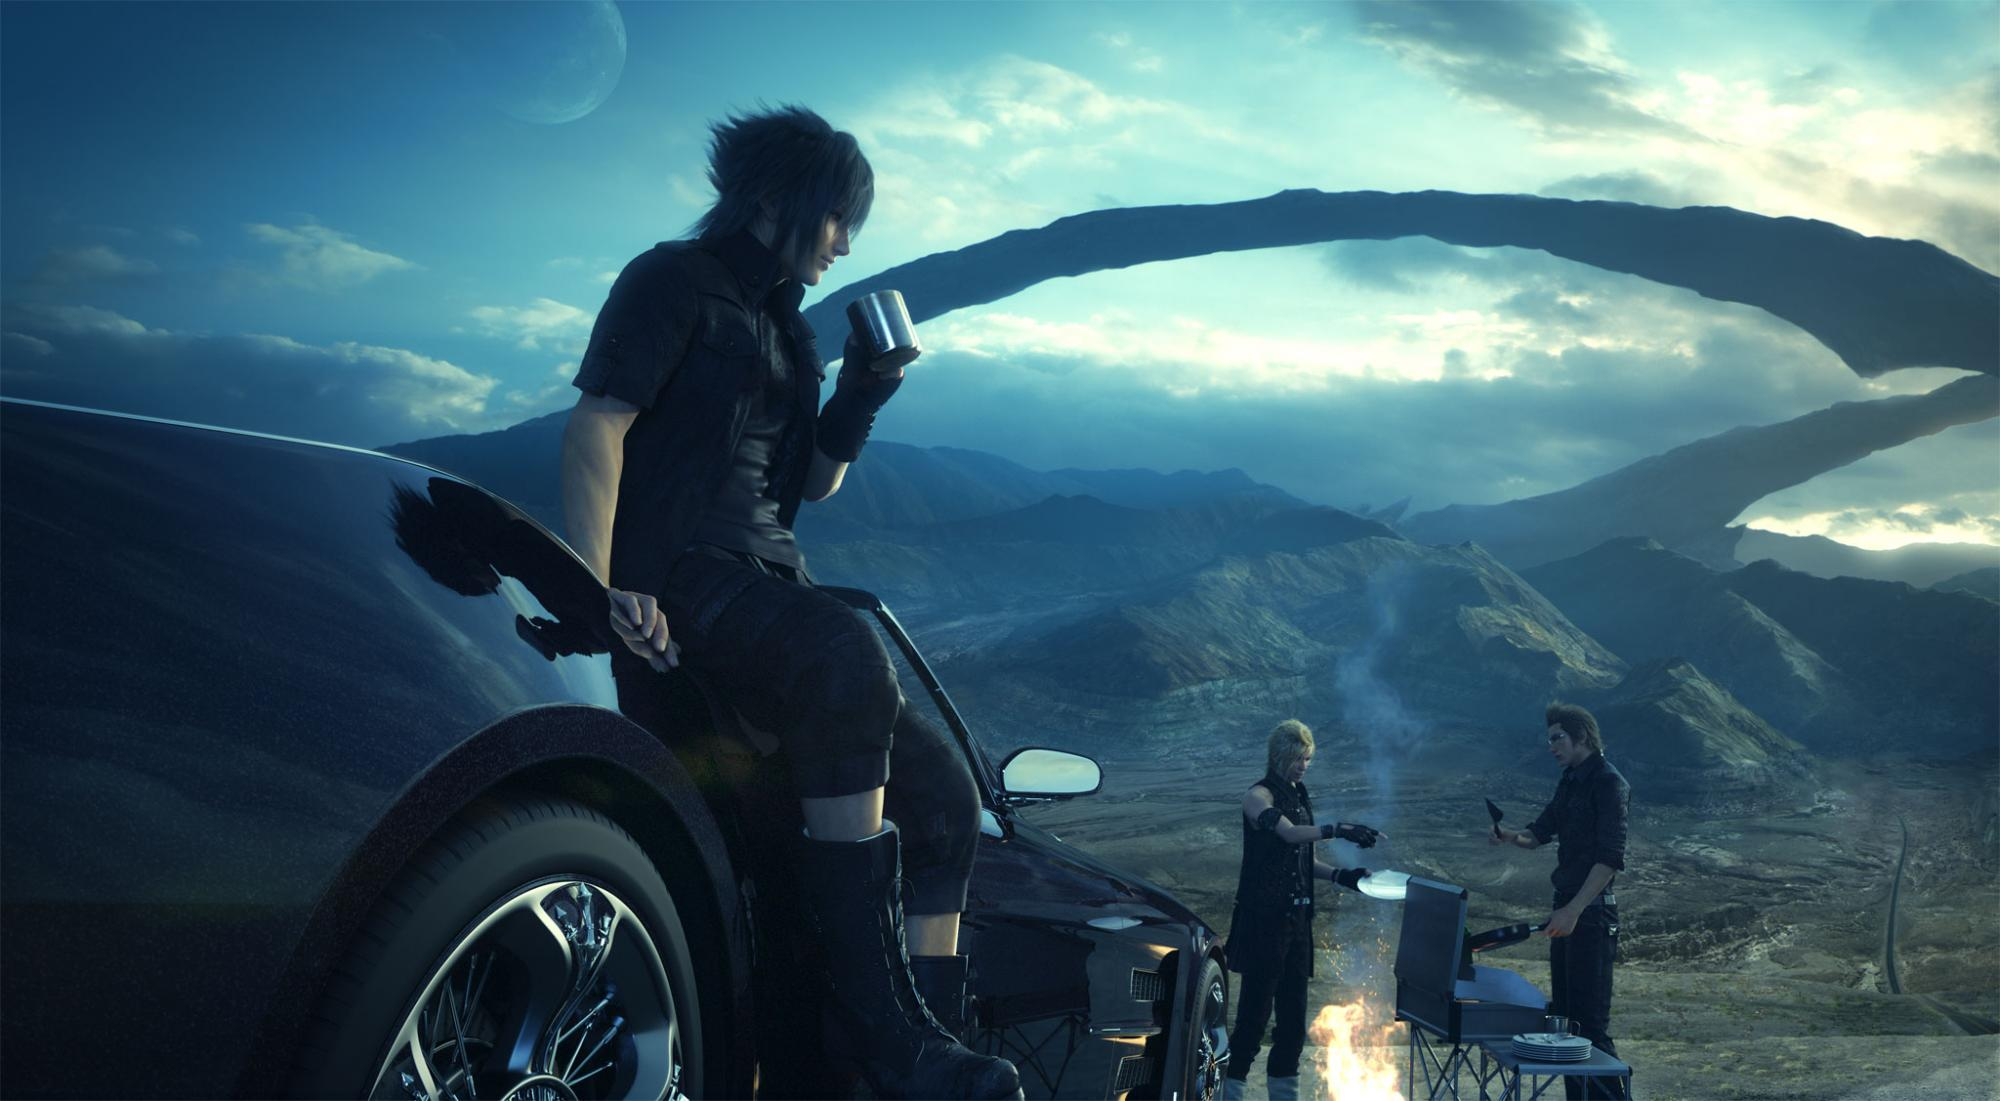 Home Design Story Game Download For Pc Video Trailer Final Fantasy Xv Tgs 2014 Trailer Megagames